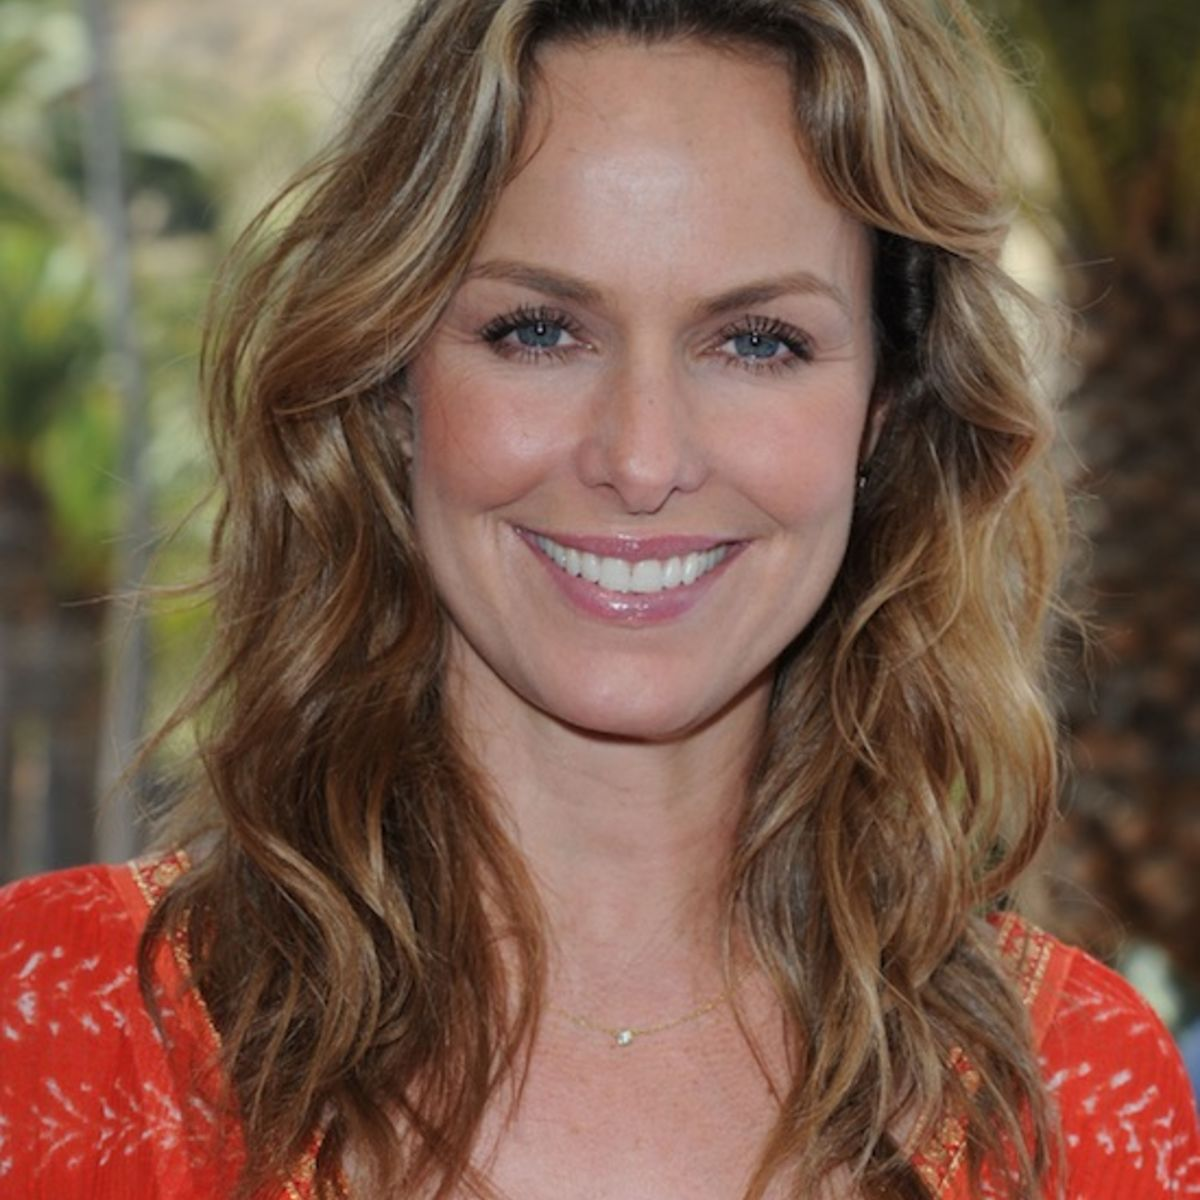 BacktotheFutureMeloraHardin.jpg